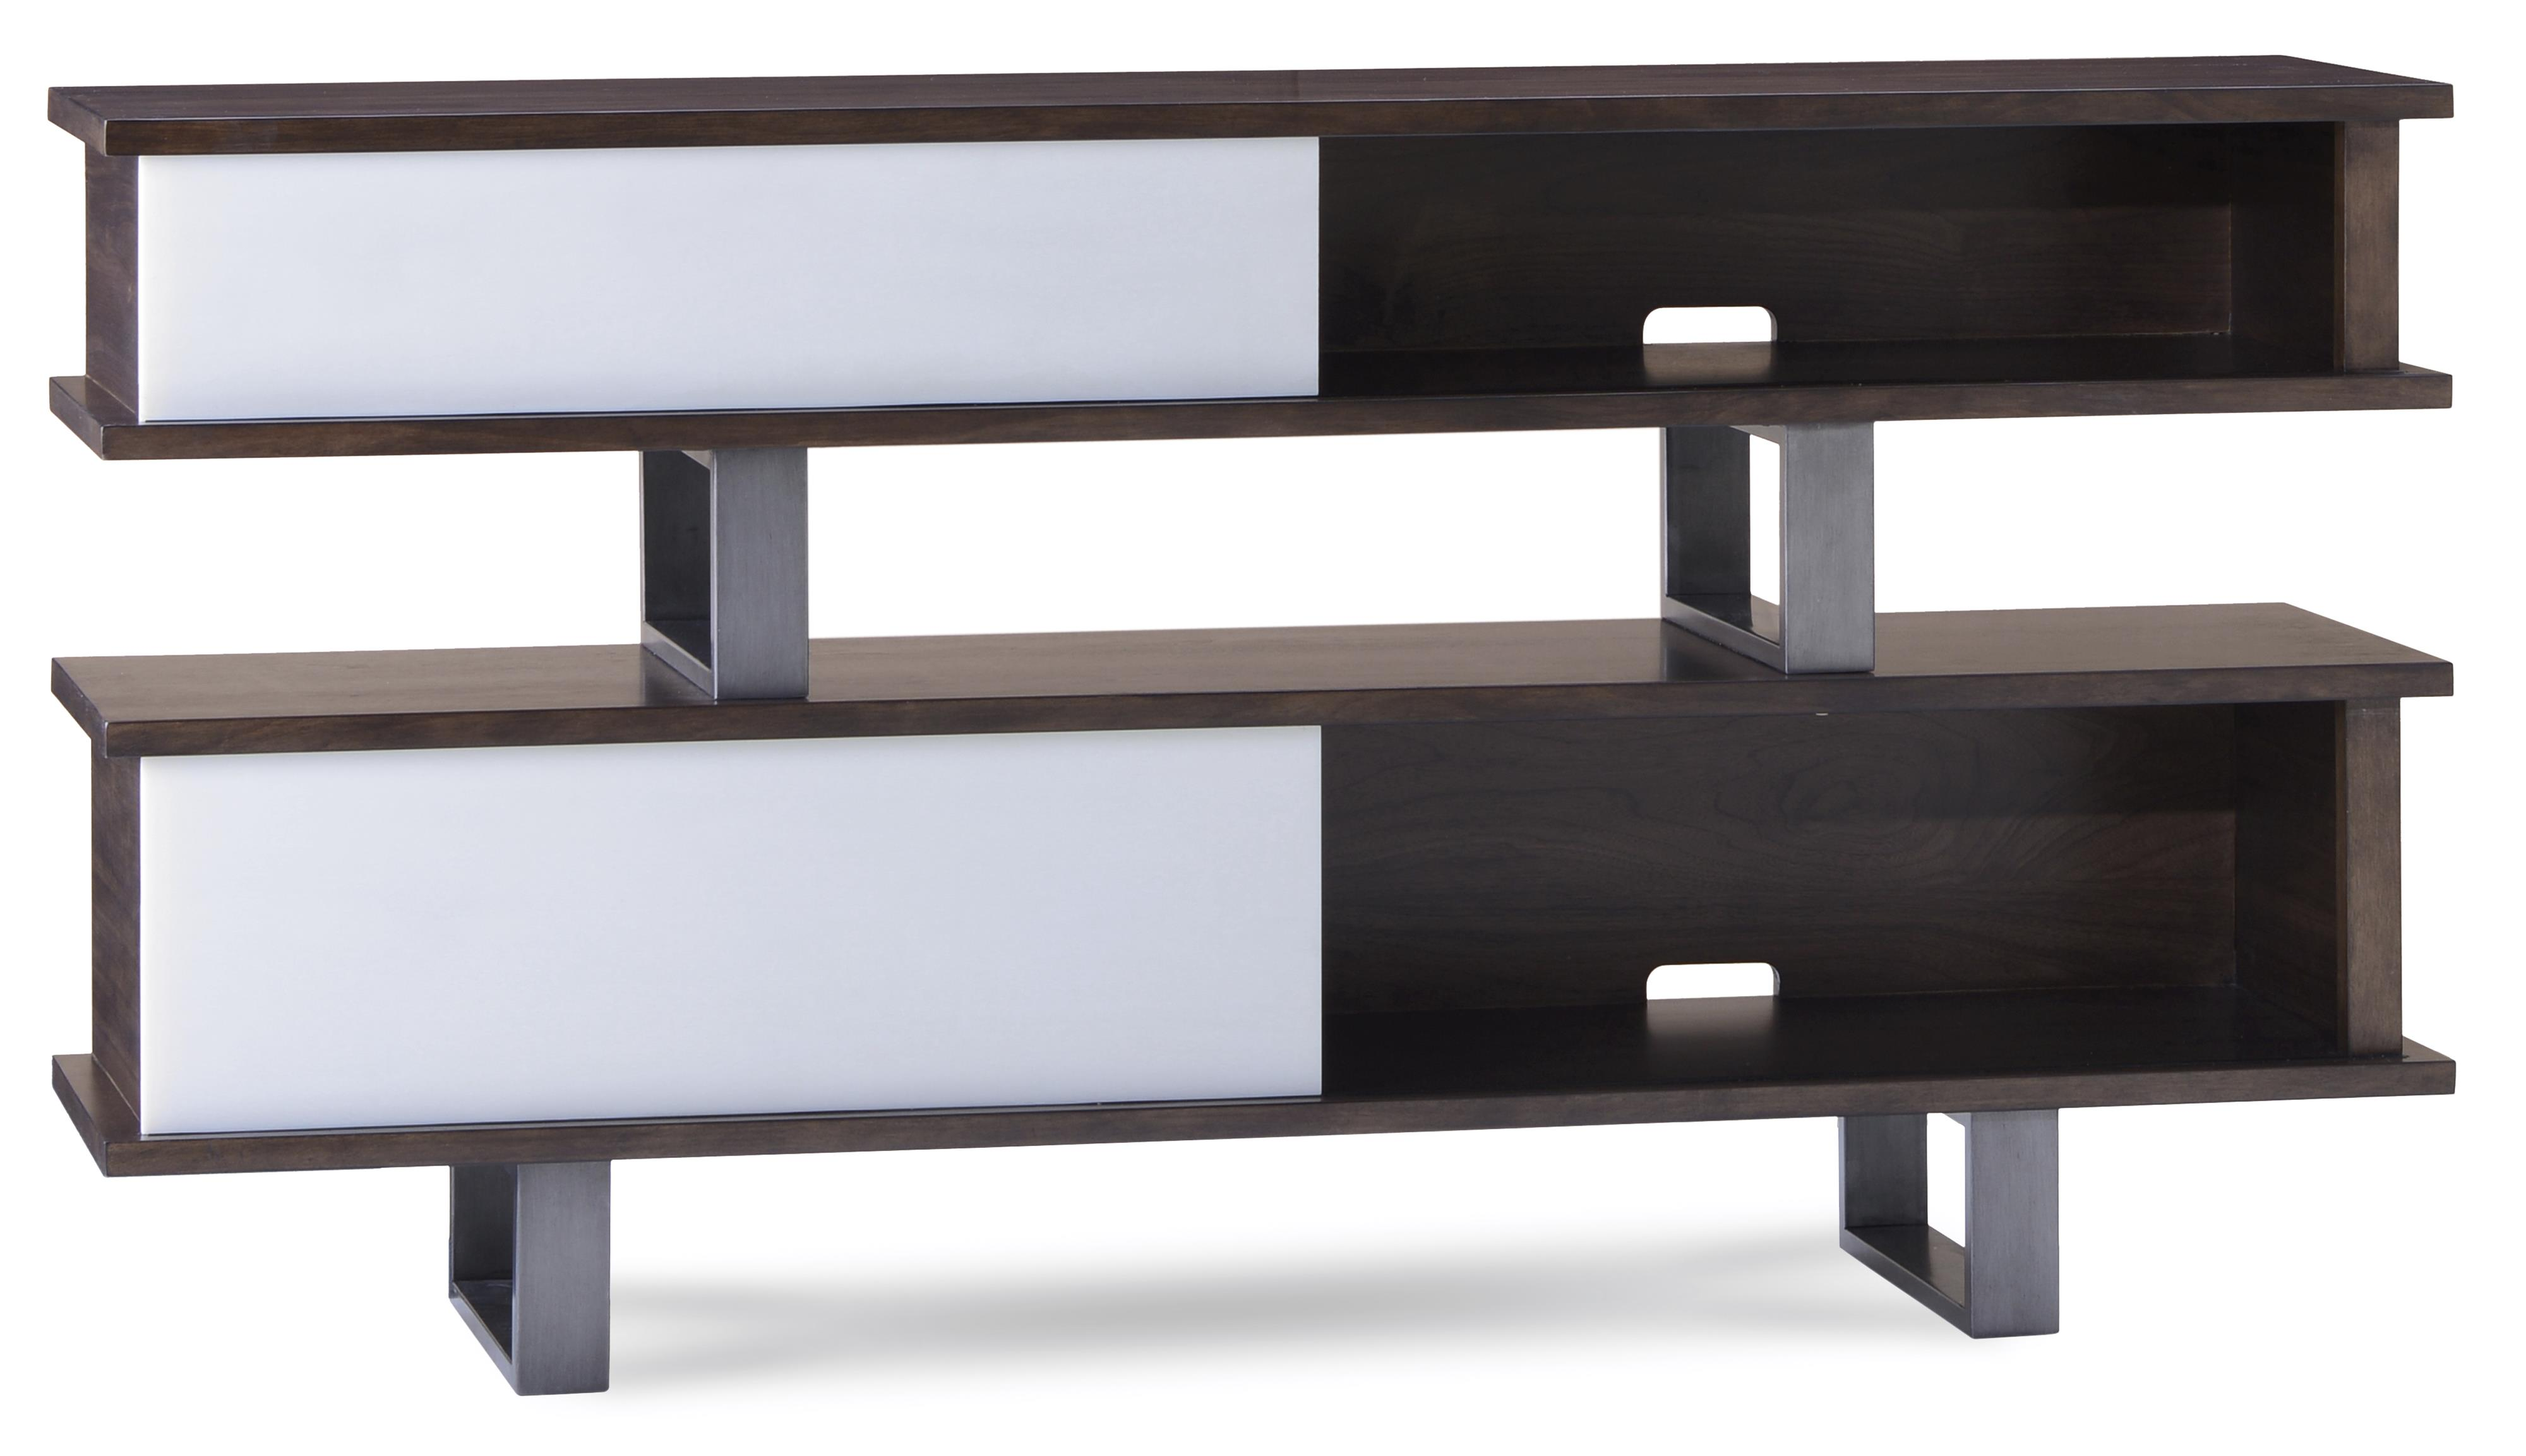 Belfort Signature Urban Treasures 14th and U Console Table - Item Number: 223308-1812